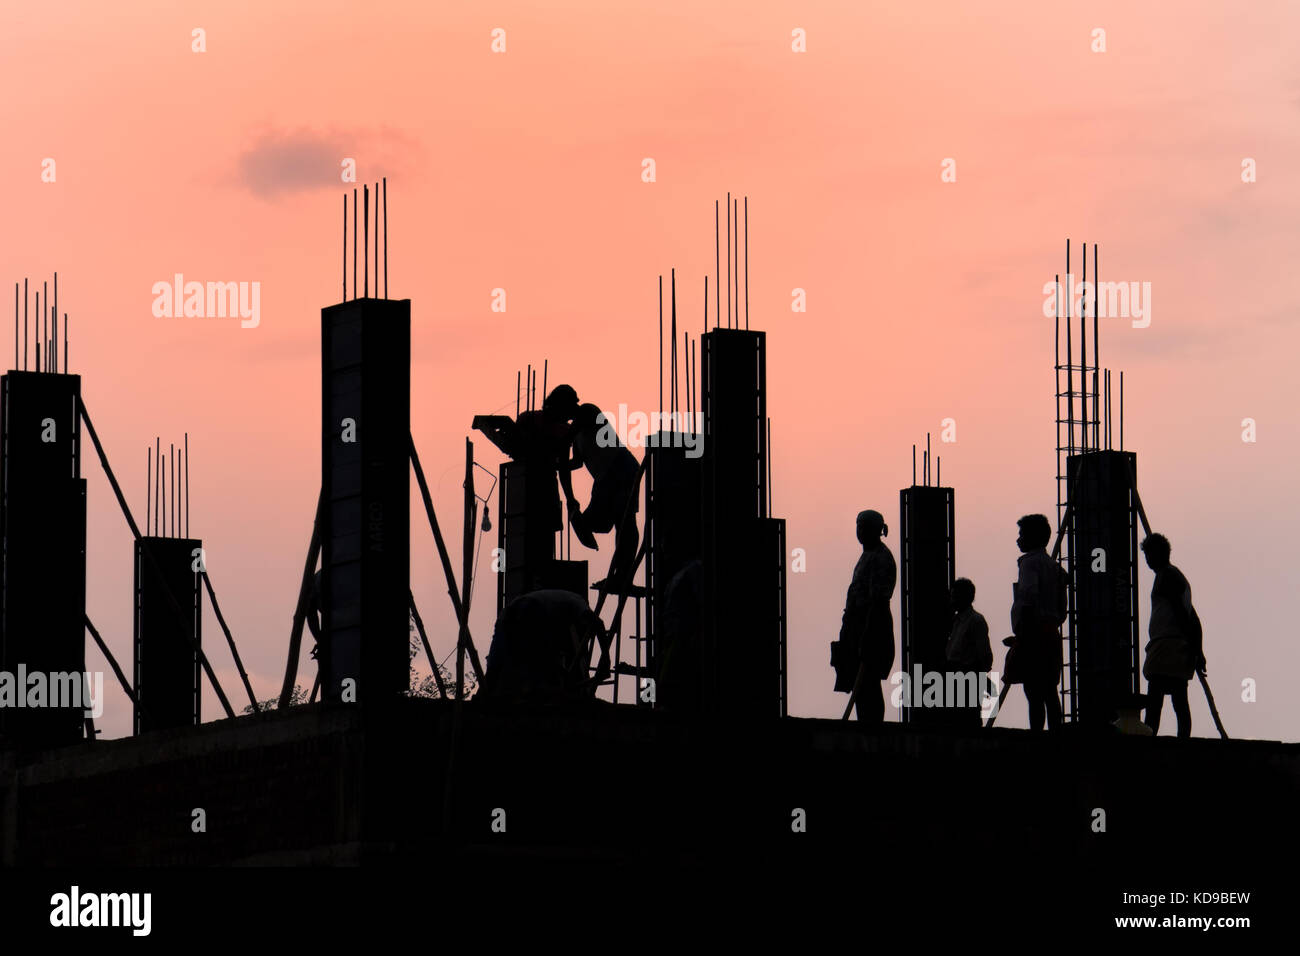 People working together - Stock Image